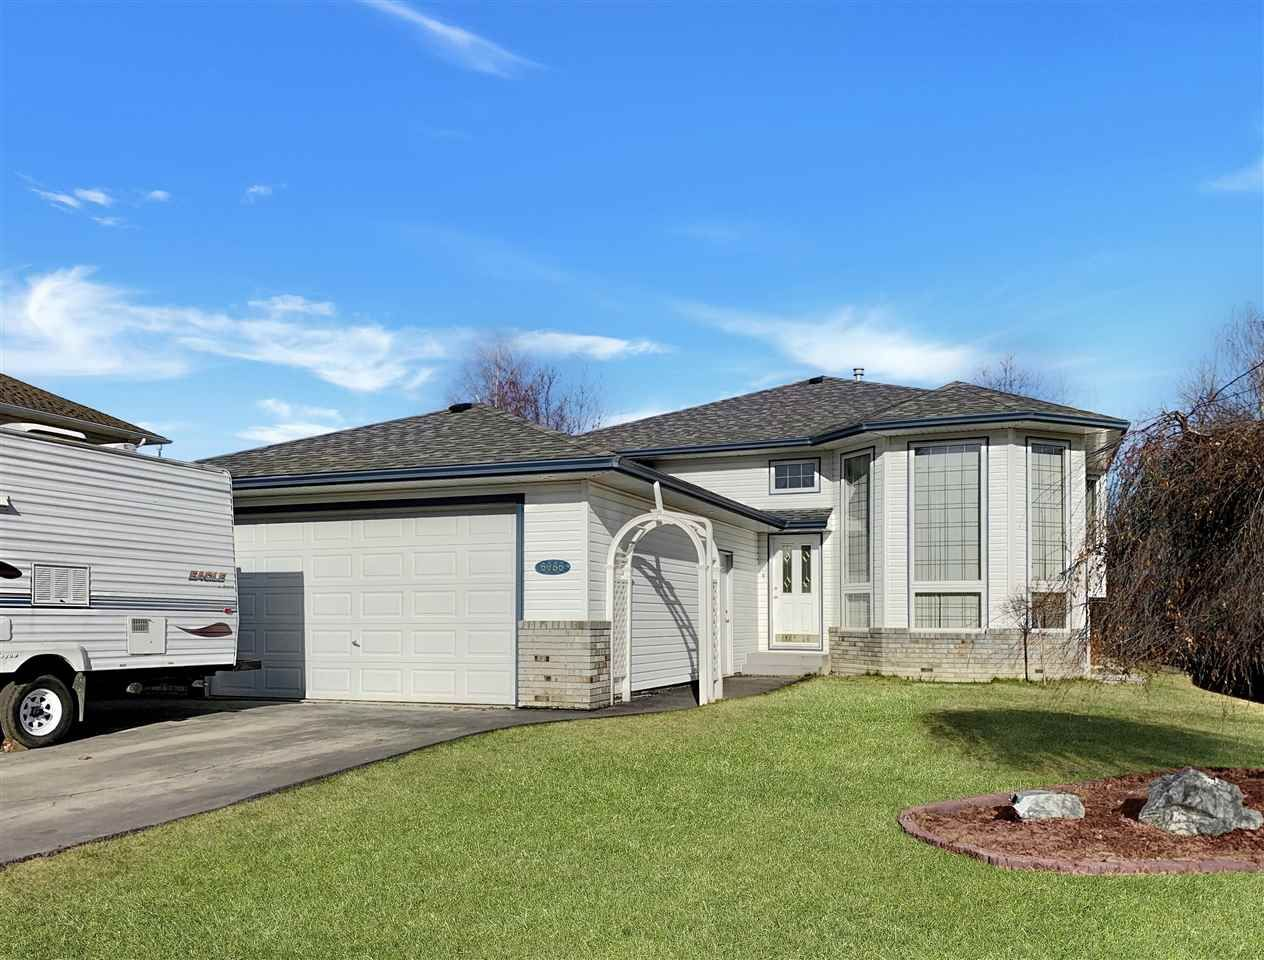 """Main Photo: 6086 TEICHMAN Crescent in Prince George: Hart Highlands House for sale in """"Hart Highlands"""" (PG City North (Zone 73))  : MLS®# R2567505"""